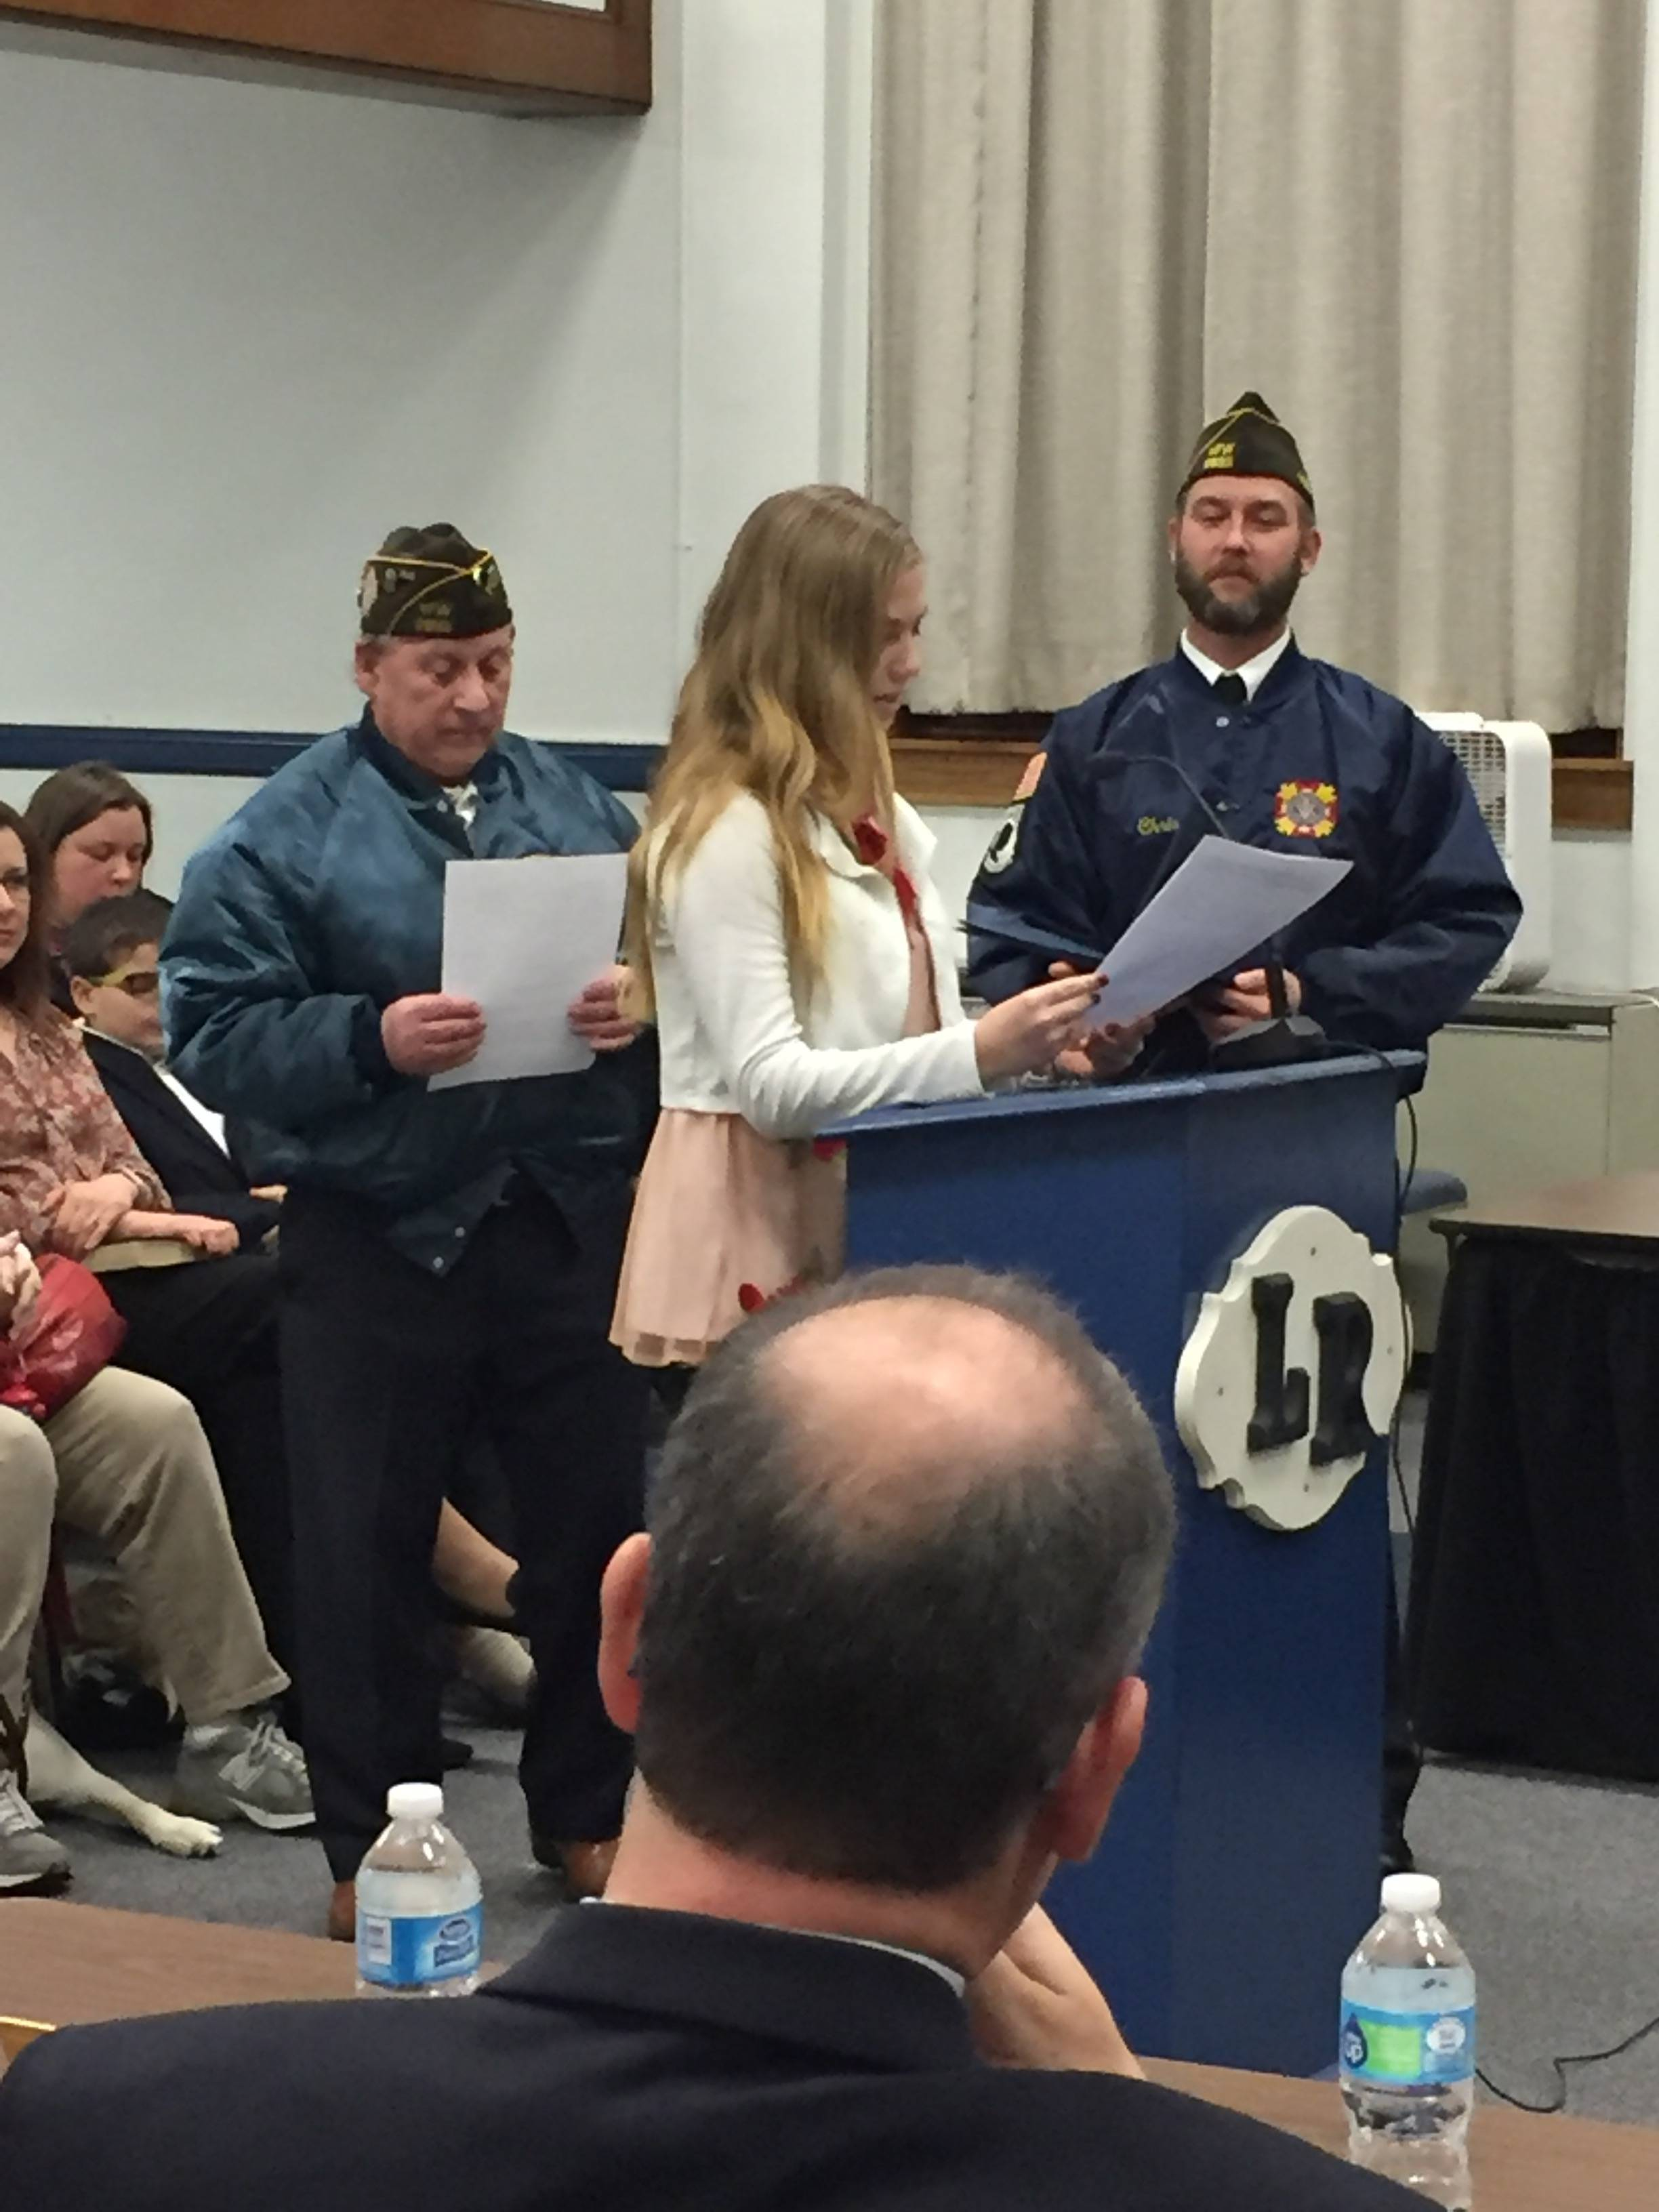 local vfw celebrates patriots pen and voice of democracy essay patriots pen emma wilk credits roxbury township public schools